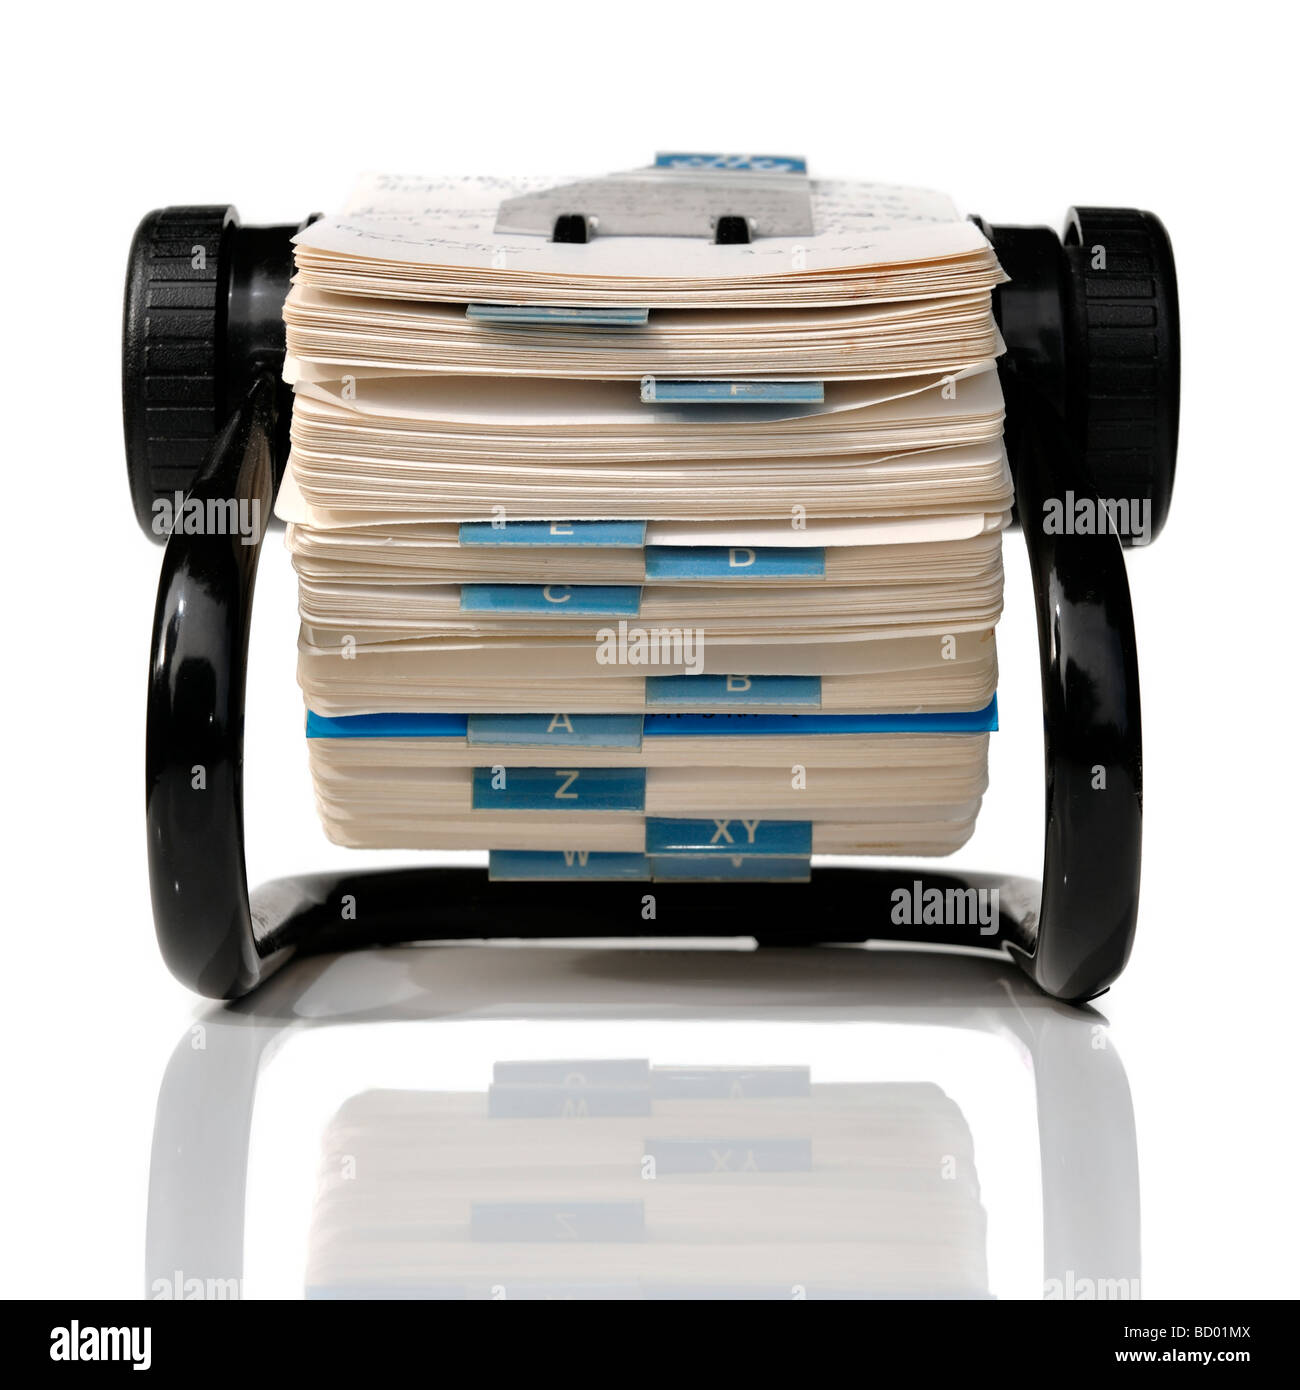 Rolodex card index file - Stock Image